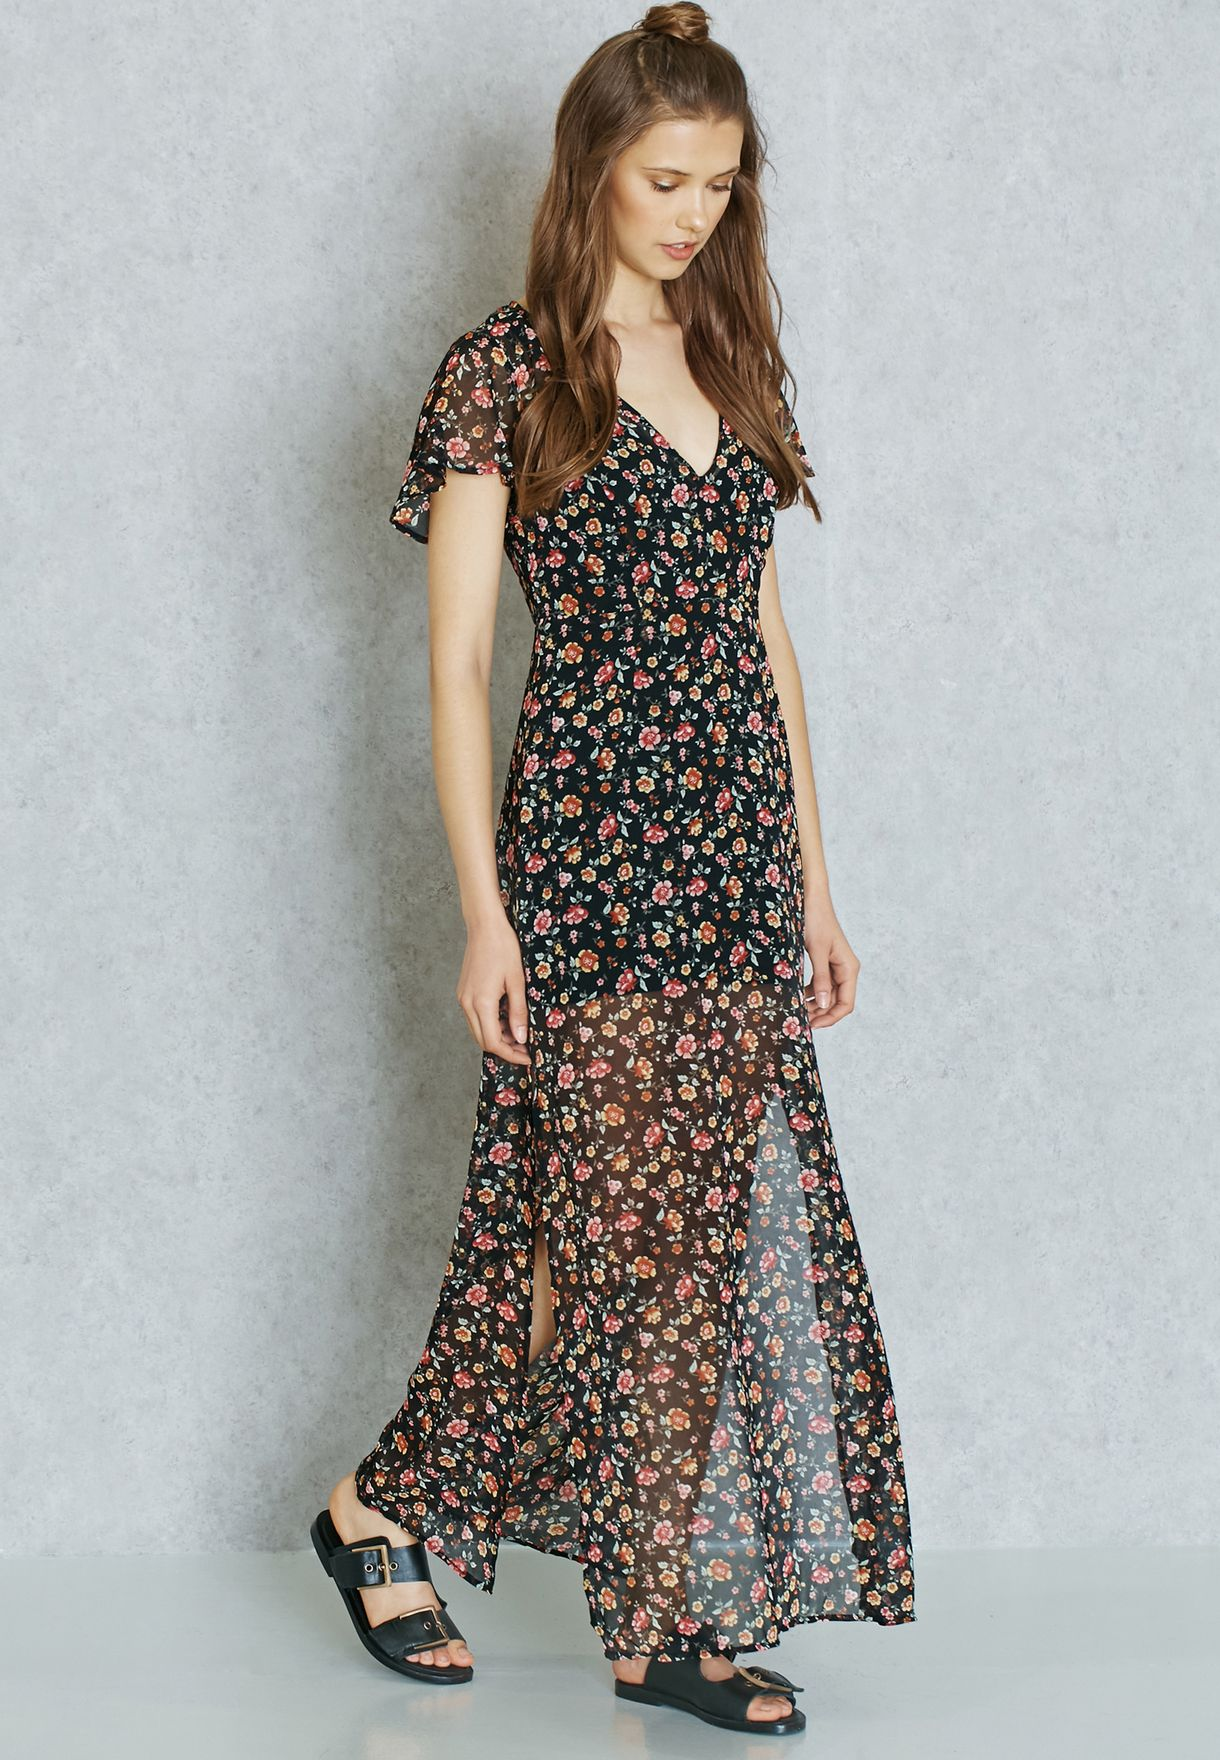 83ac3265e9 Shop Forever 21 prints Front Slit Maxi Dress 223724 for Women in ...